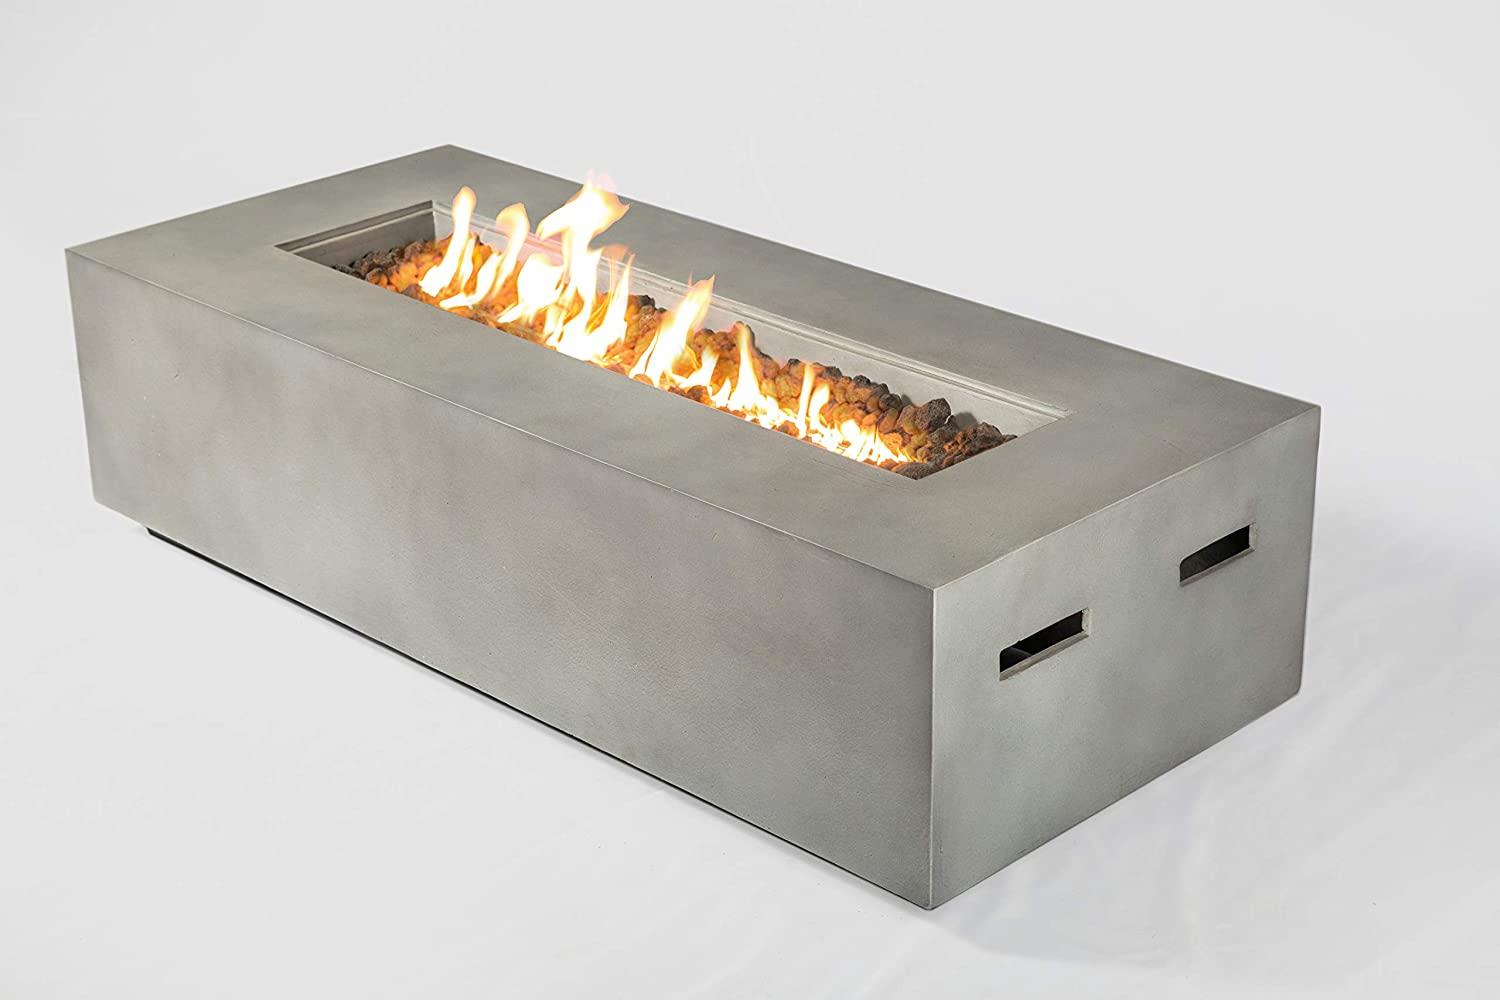 Propane Outdoor Fire Pit Cm 1012c Rectangular Gas Fire Table Table For Balcony Courtyard Balcony Terrace And Barbecue Low Height Fireplace Natural Concrete Size 16 H X 42 W X 20